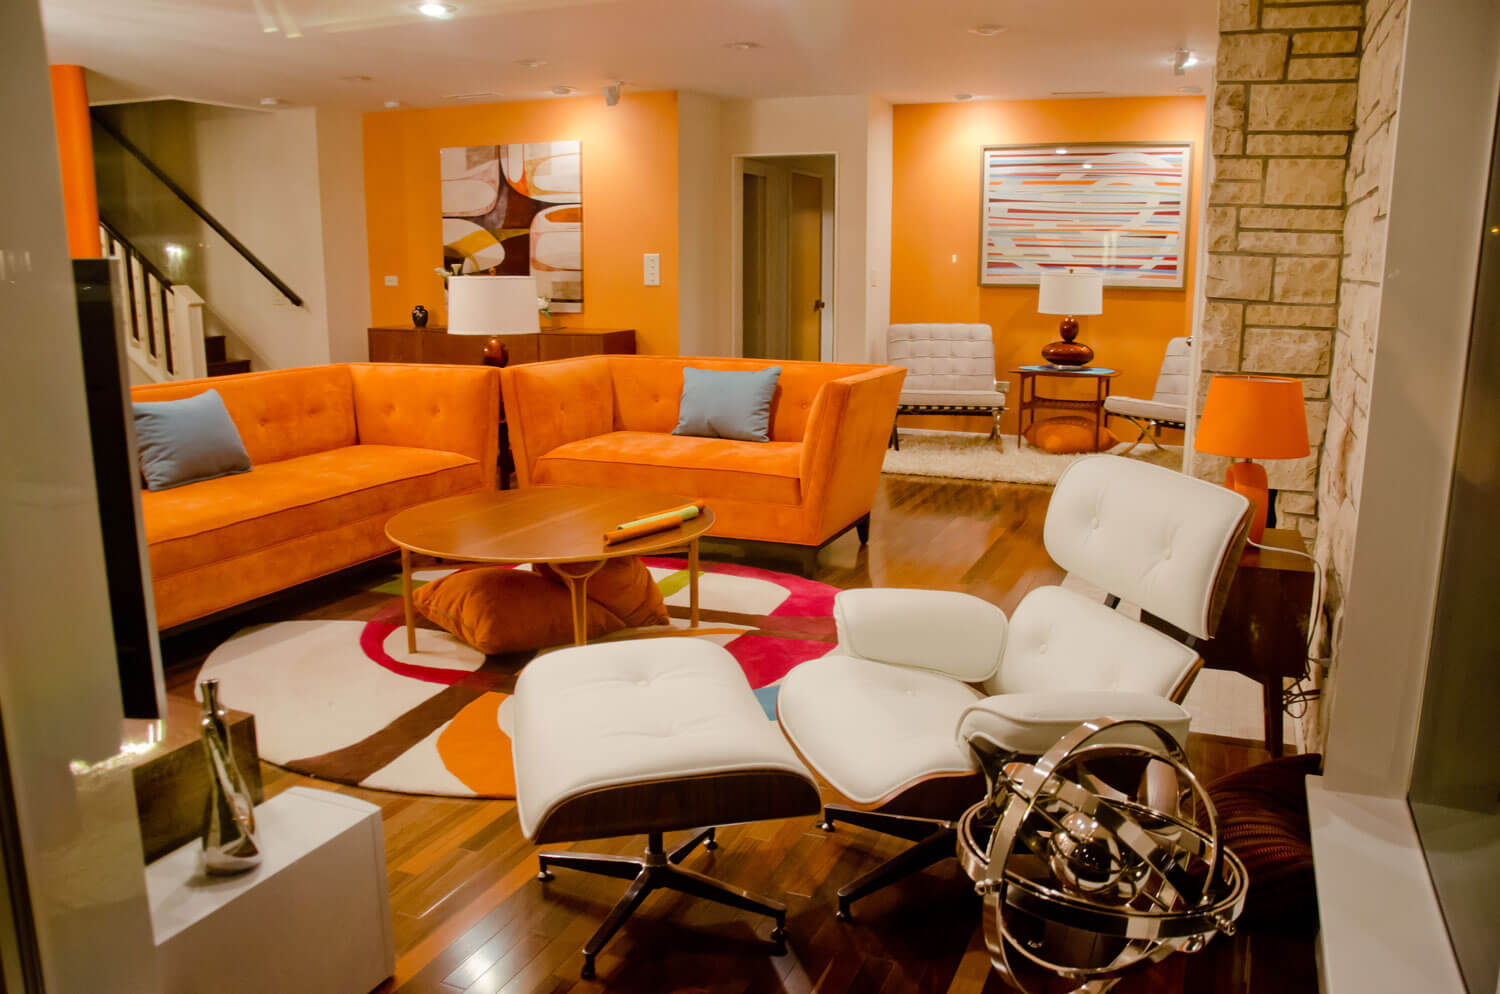 Orange living room ideas with orange walls, orange sofas, orange lamps and round coffee table. In contrast with the white relaxation chairs and white ceiling.